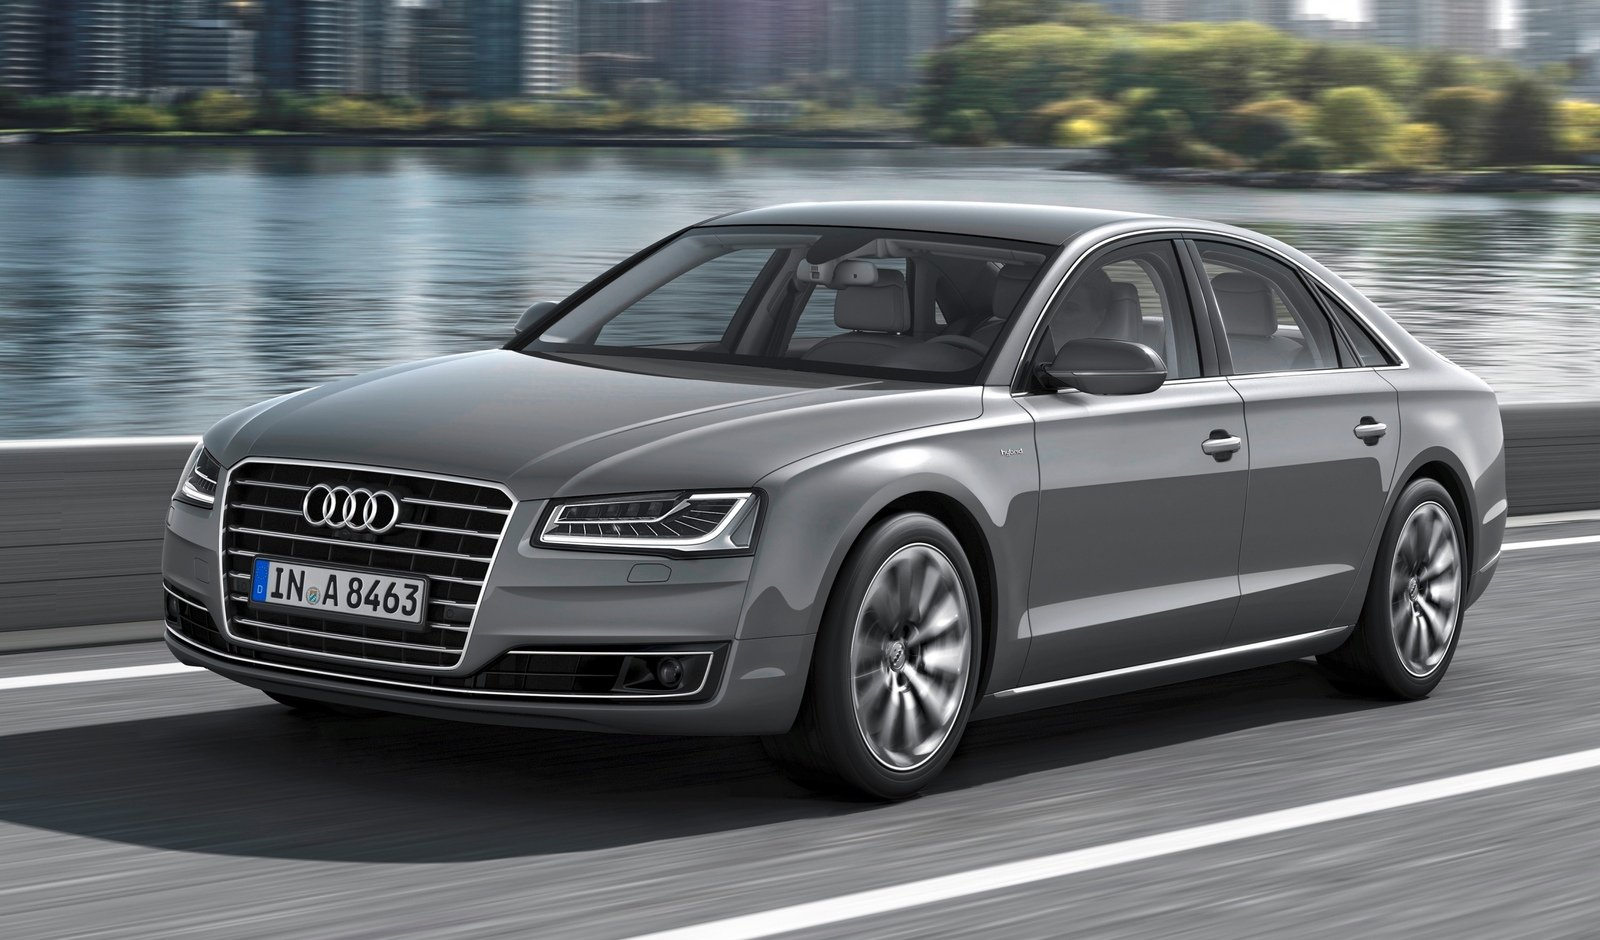 2015 audi a8 hybrid review top speed. Black Bedroom Furniture Sets. Home Design Ideas